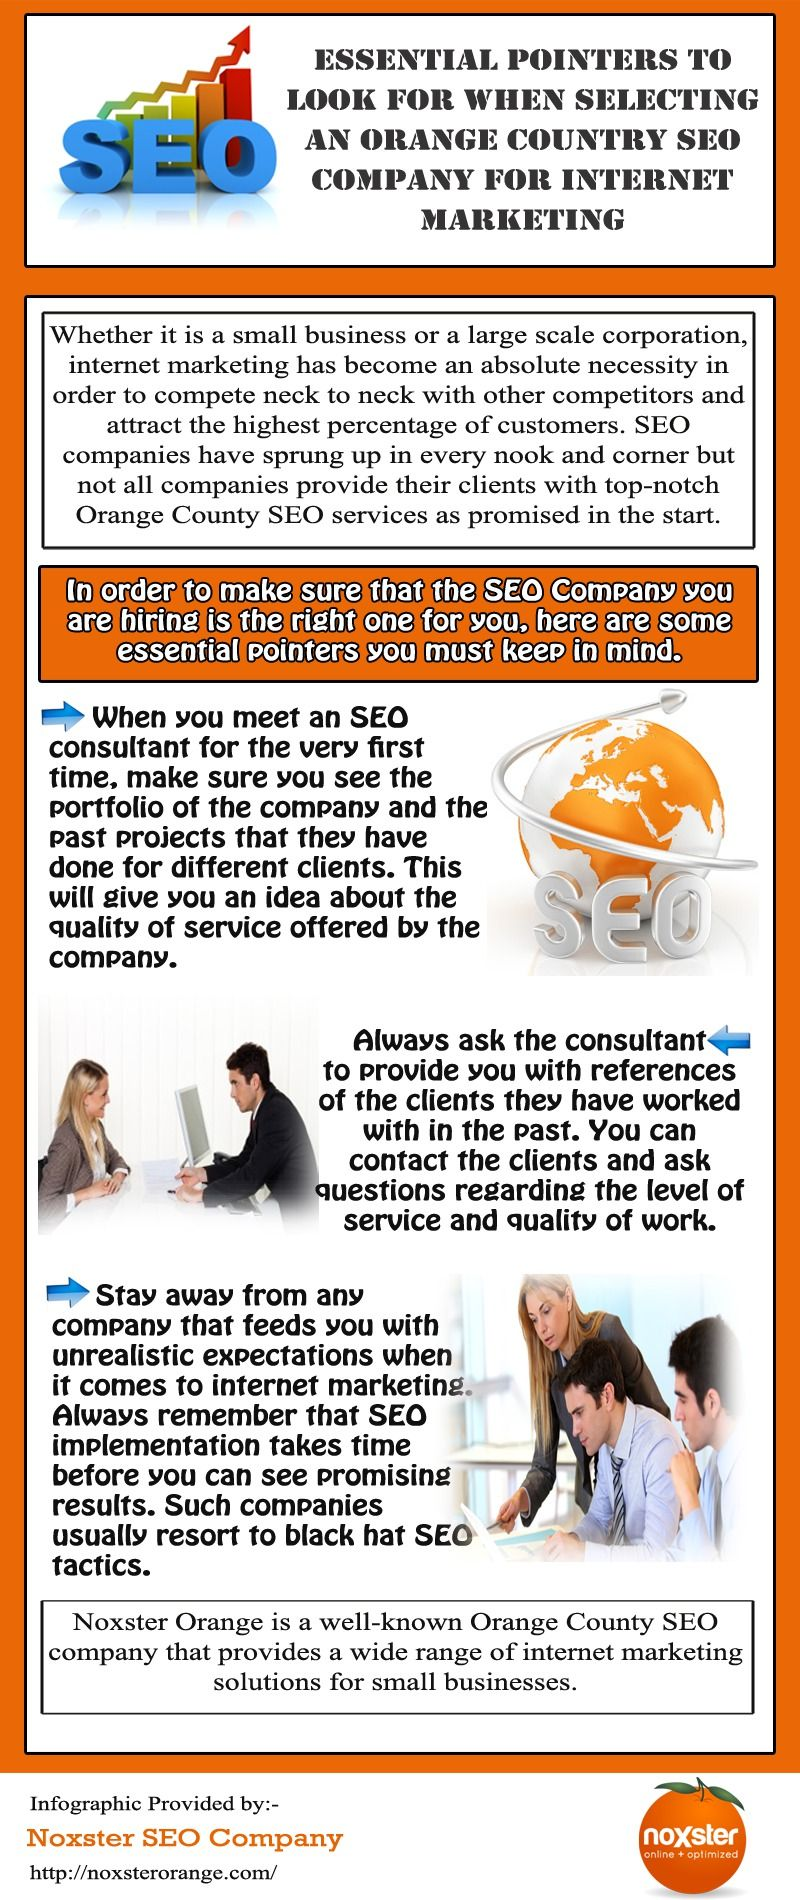 Whether it is a small business or a large scale corporation, internet marketing has become an absolute necessity in order to compete neck to neck with other competitors and attract the highest percentage of customers. Log on - http://noxsterorange.com